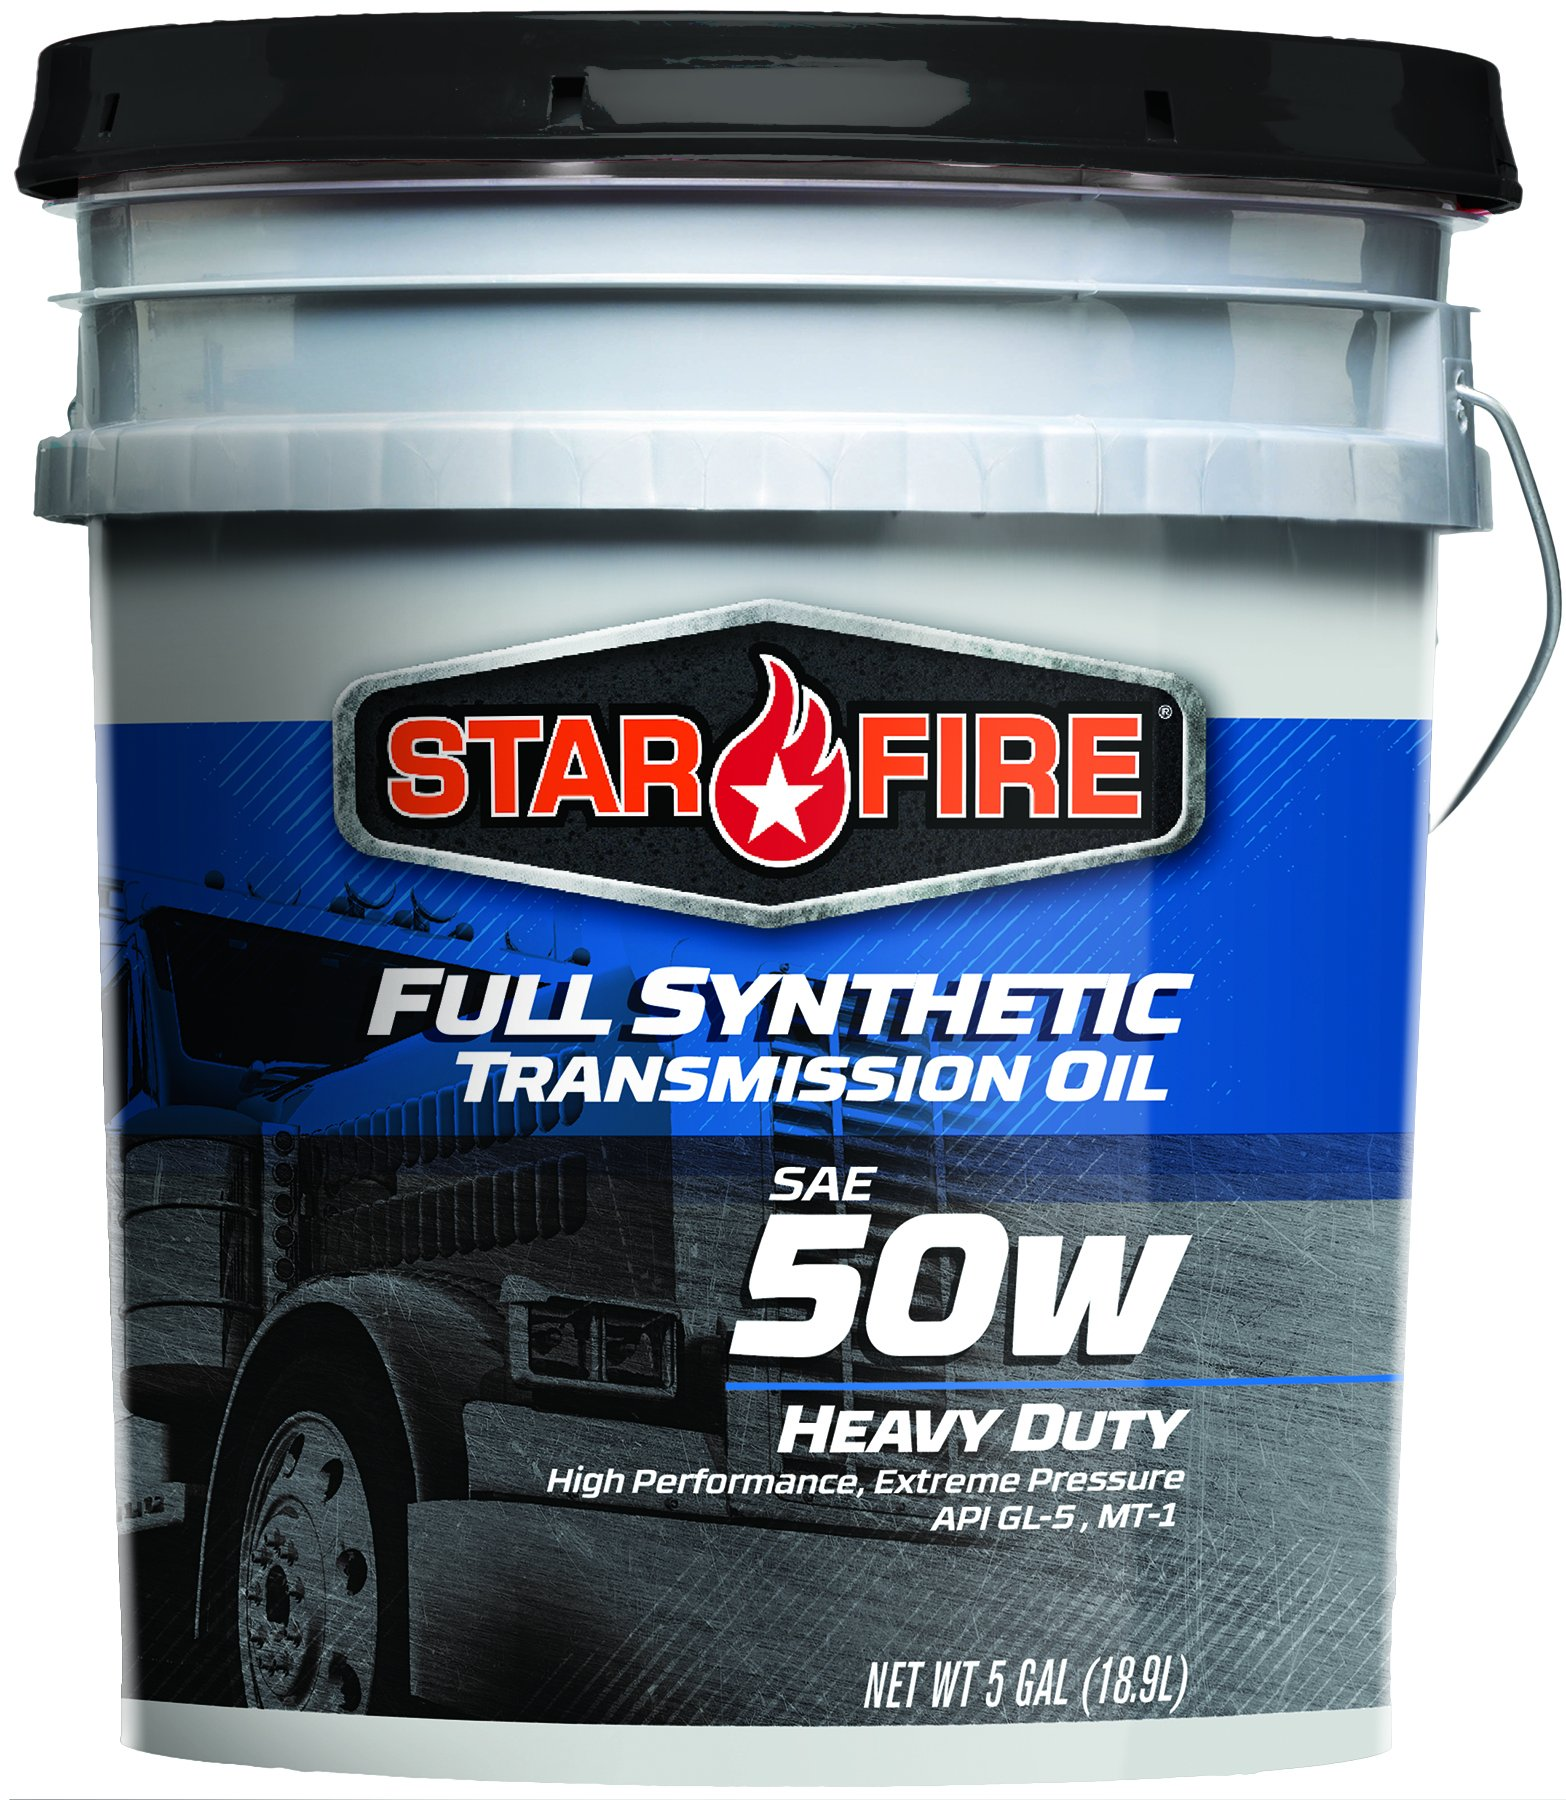 Starfire Premium Lubricants SF F/S 50W to 5 Gallon Full Synthetic Transmission Oil, 5 gal Pail by Star Fire Premium Lubricants